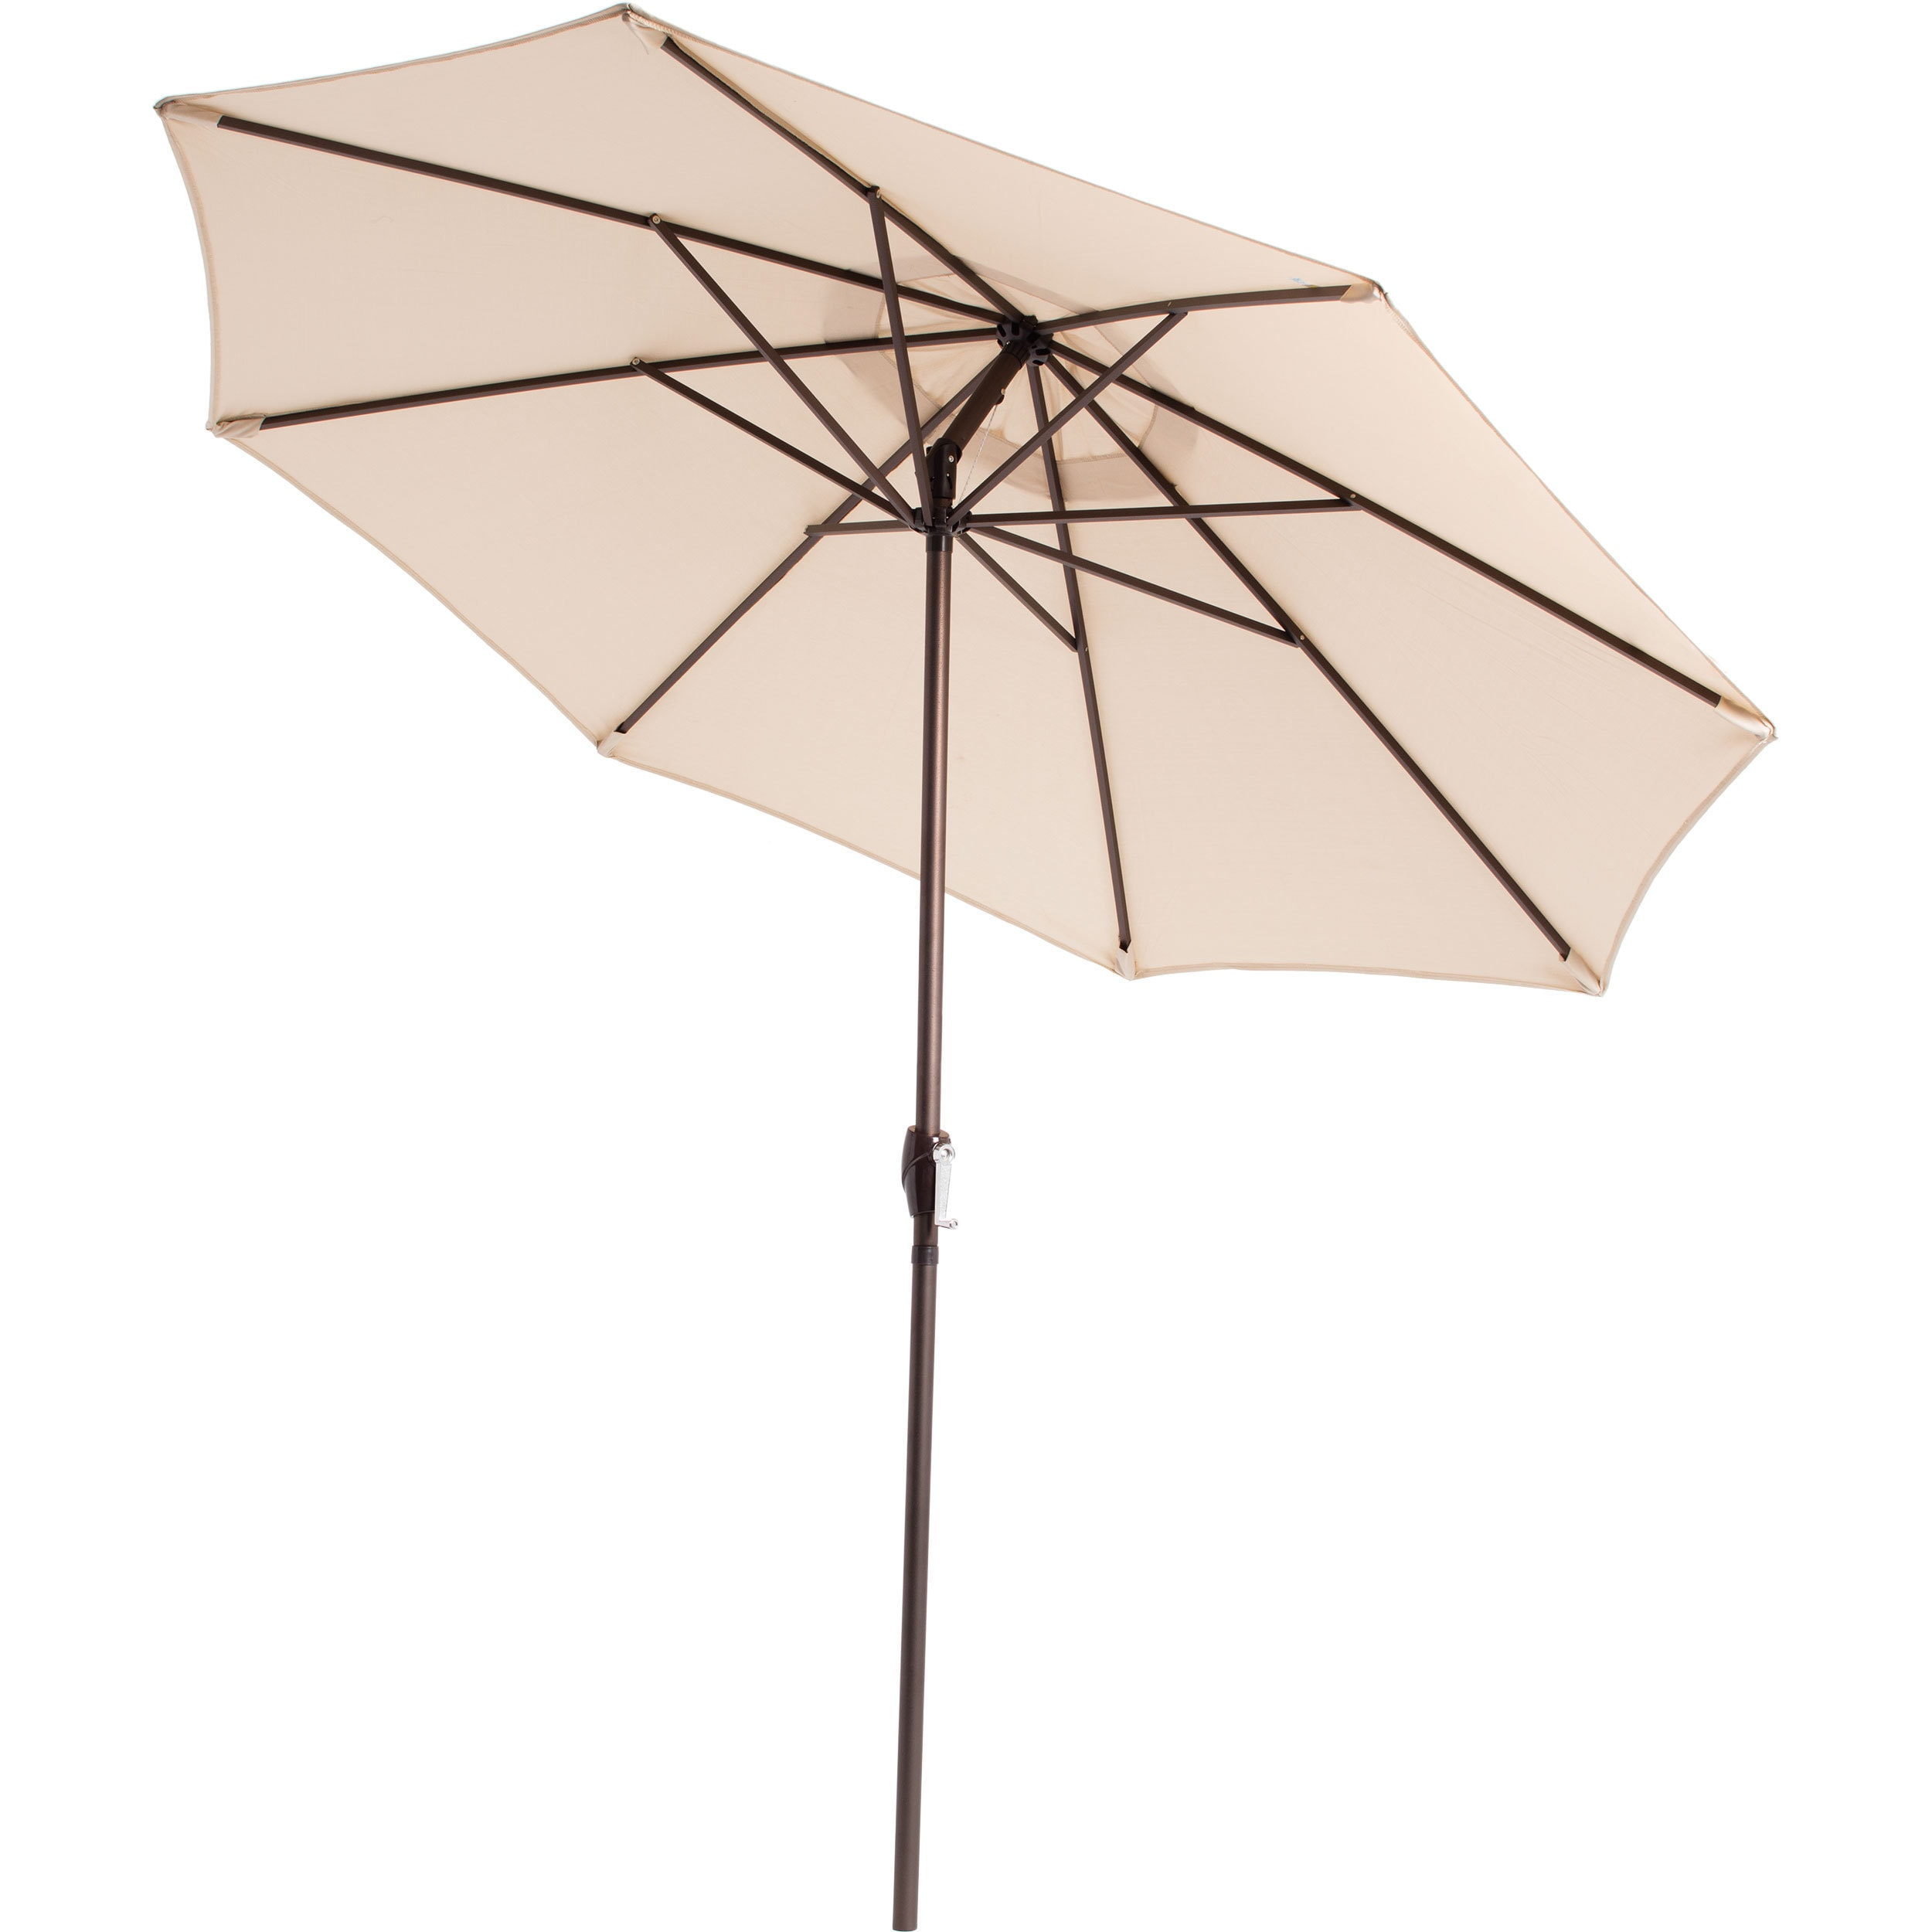 world ip walmart aluminum coral patio x ft umbrella com rectangle market coast